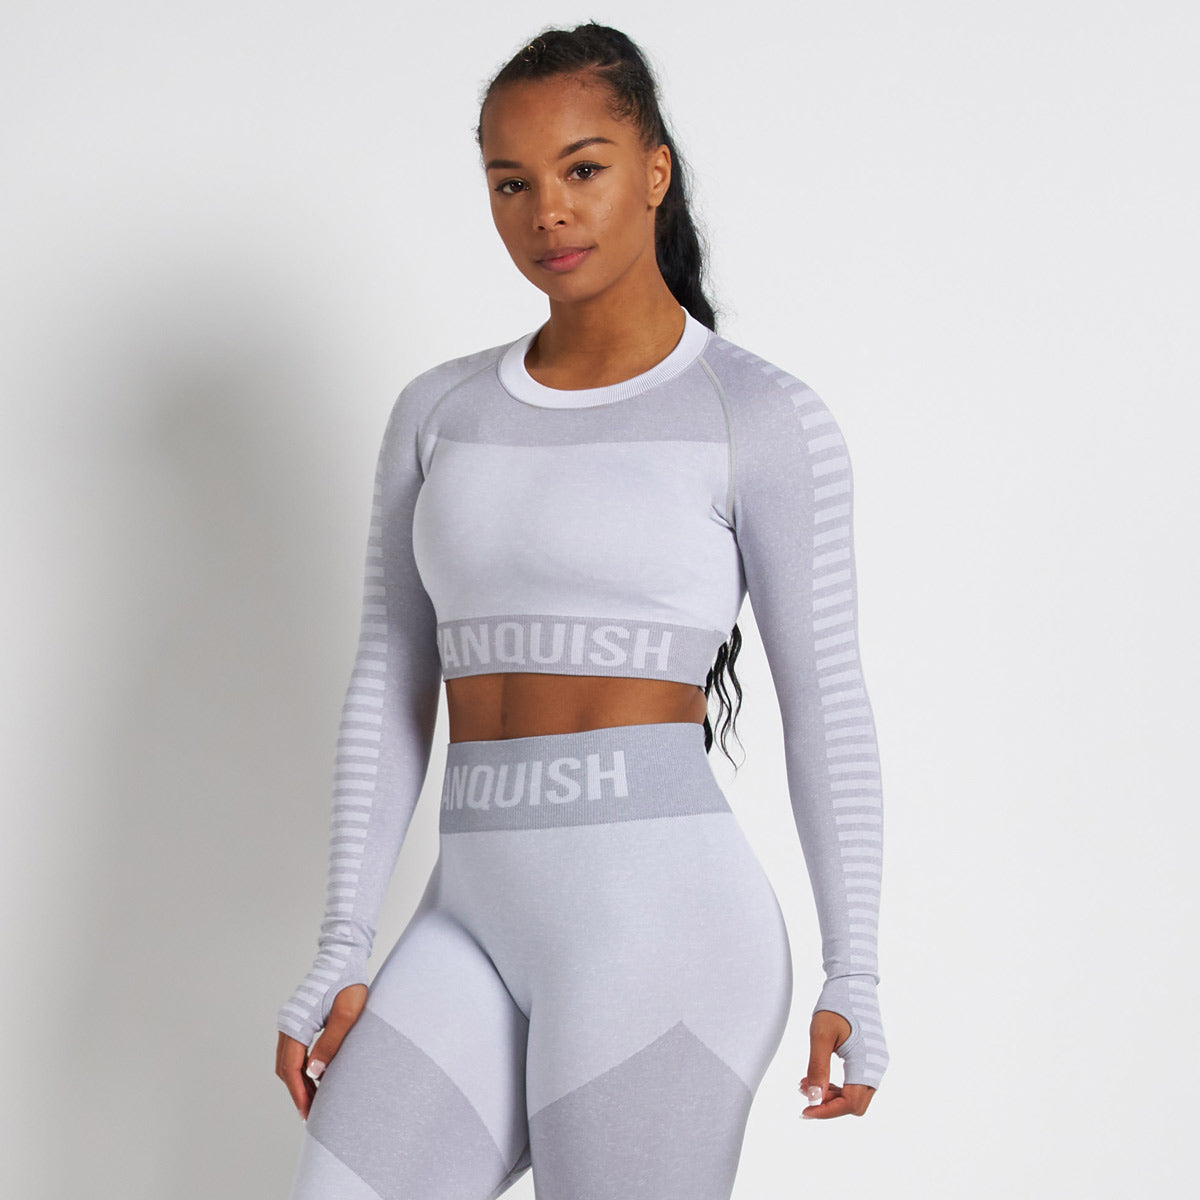 Vanquish Allure Women's White Seamless Long Sleeve Crop Top